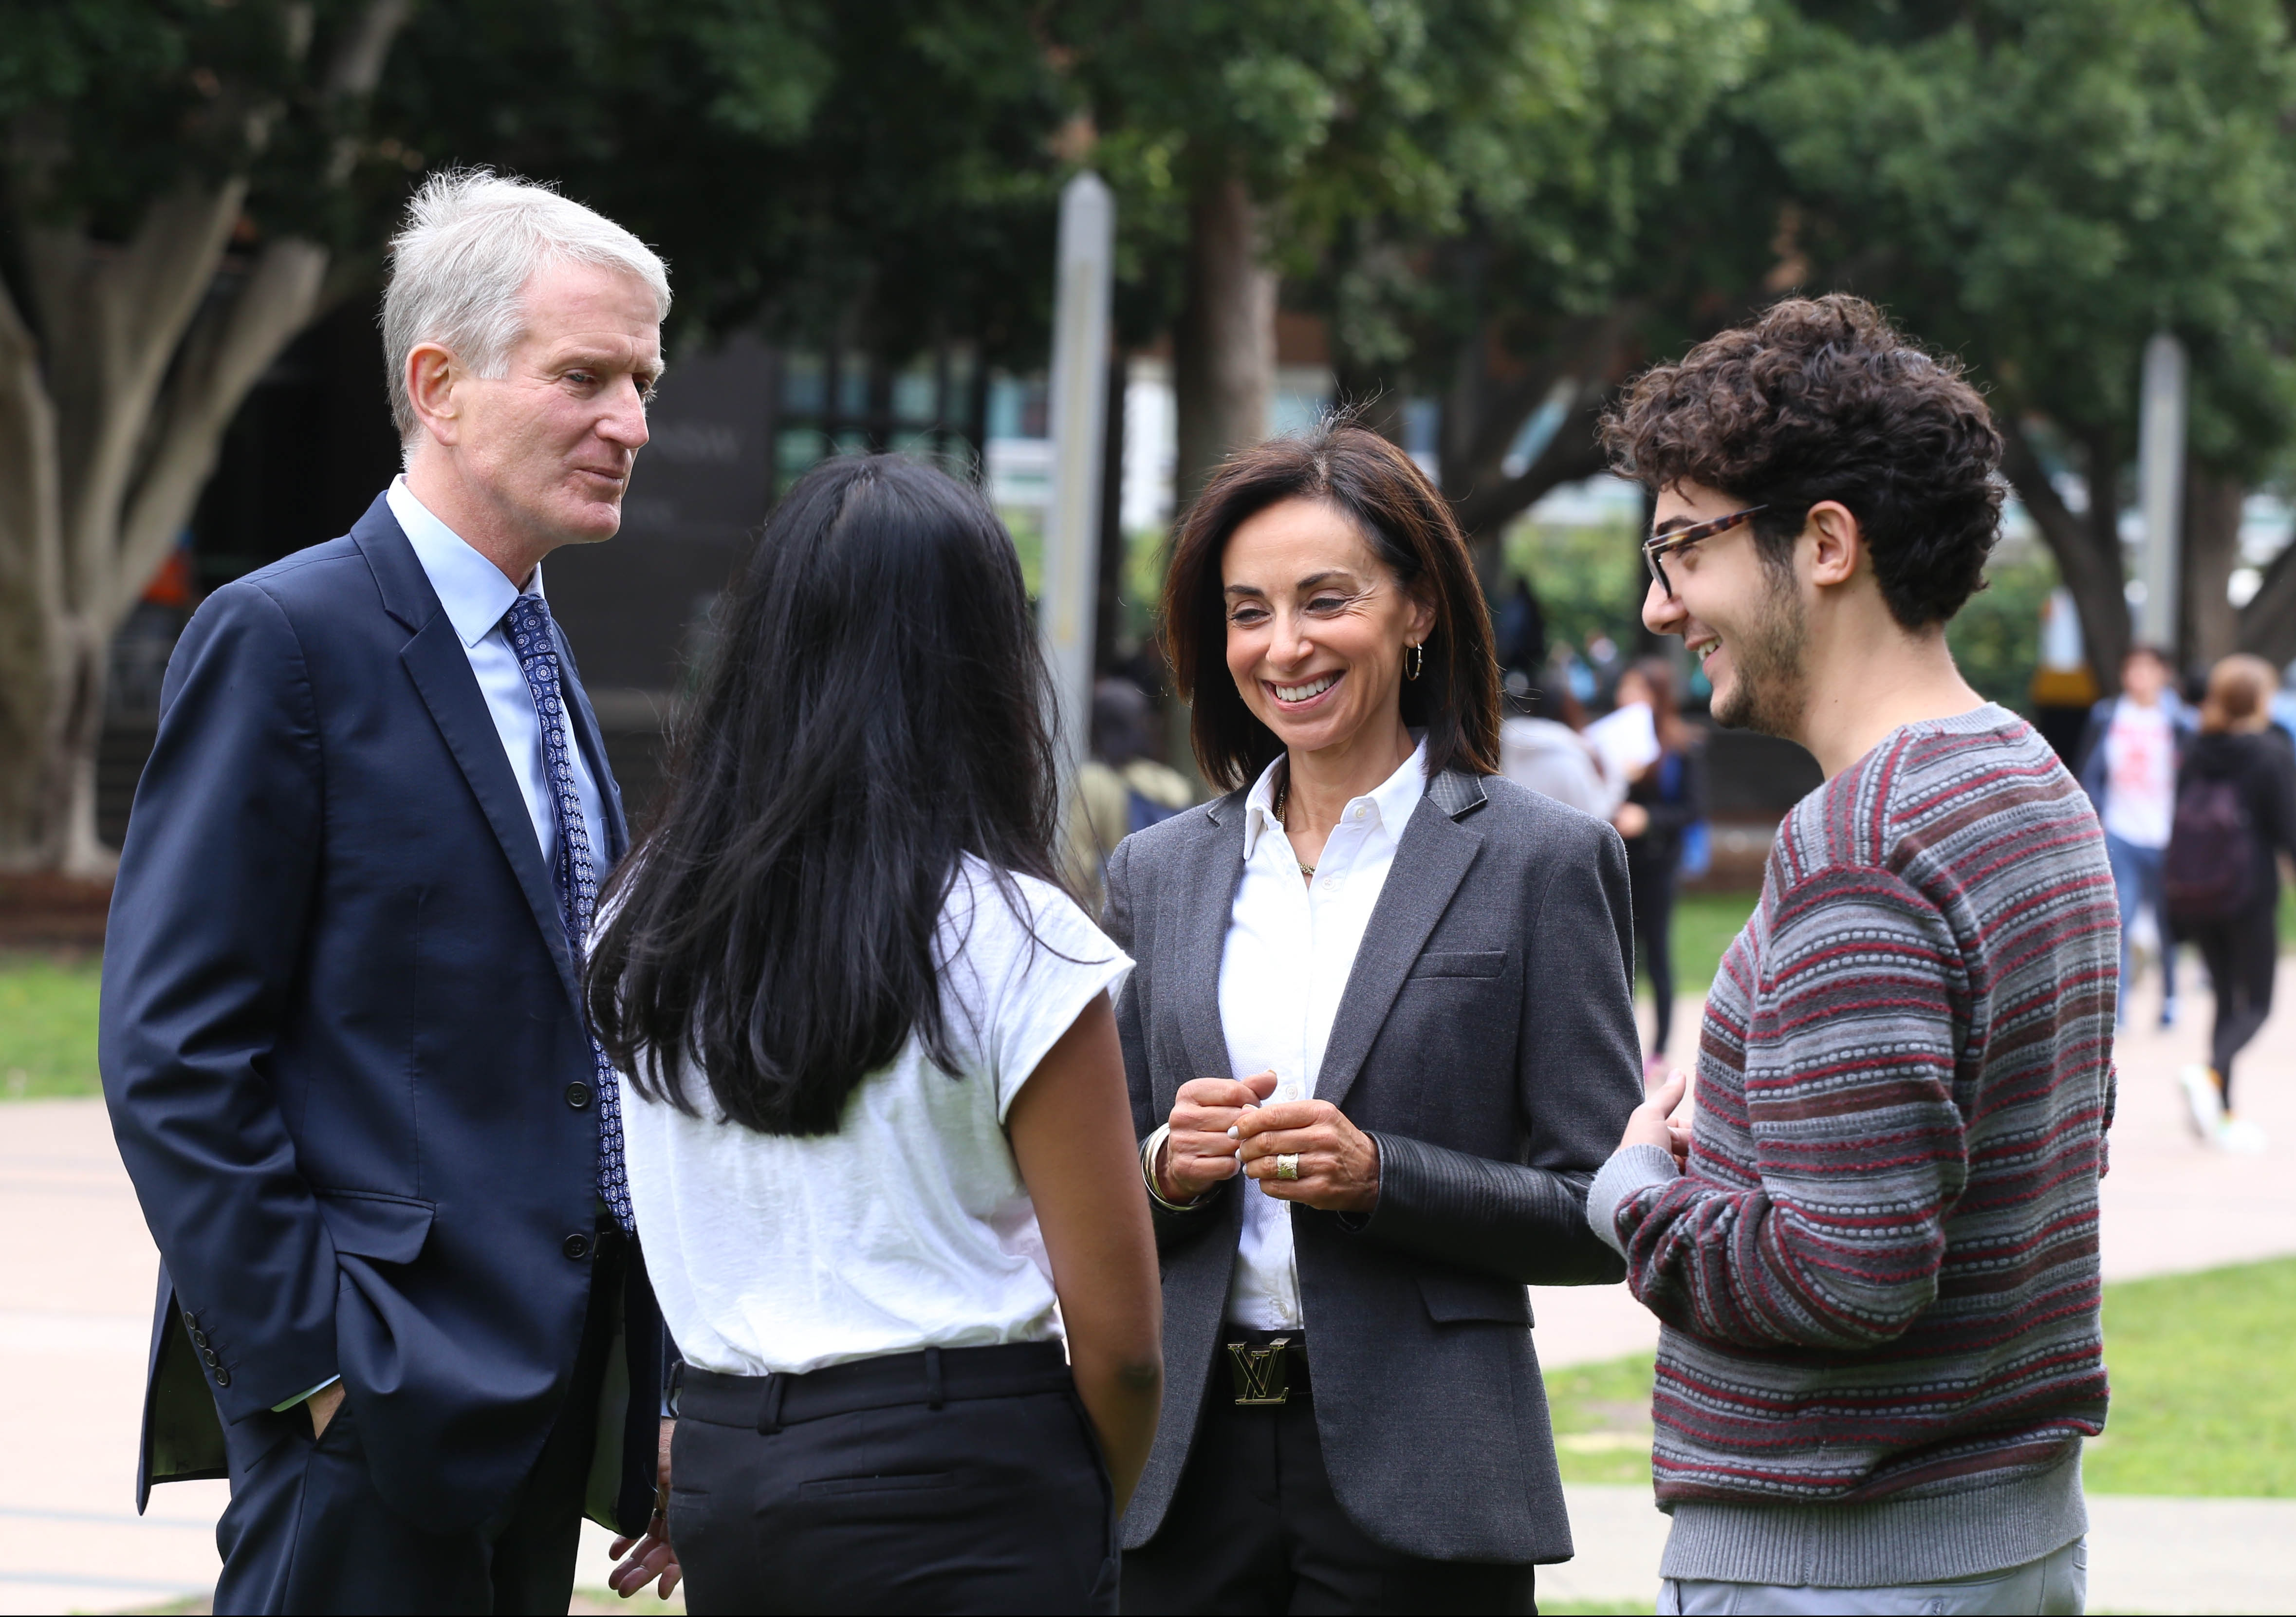 A collaborative approach ... Careers Services Manager Joanne Glanz and Dean David Dixon with students